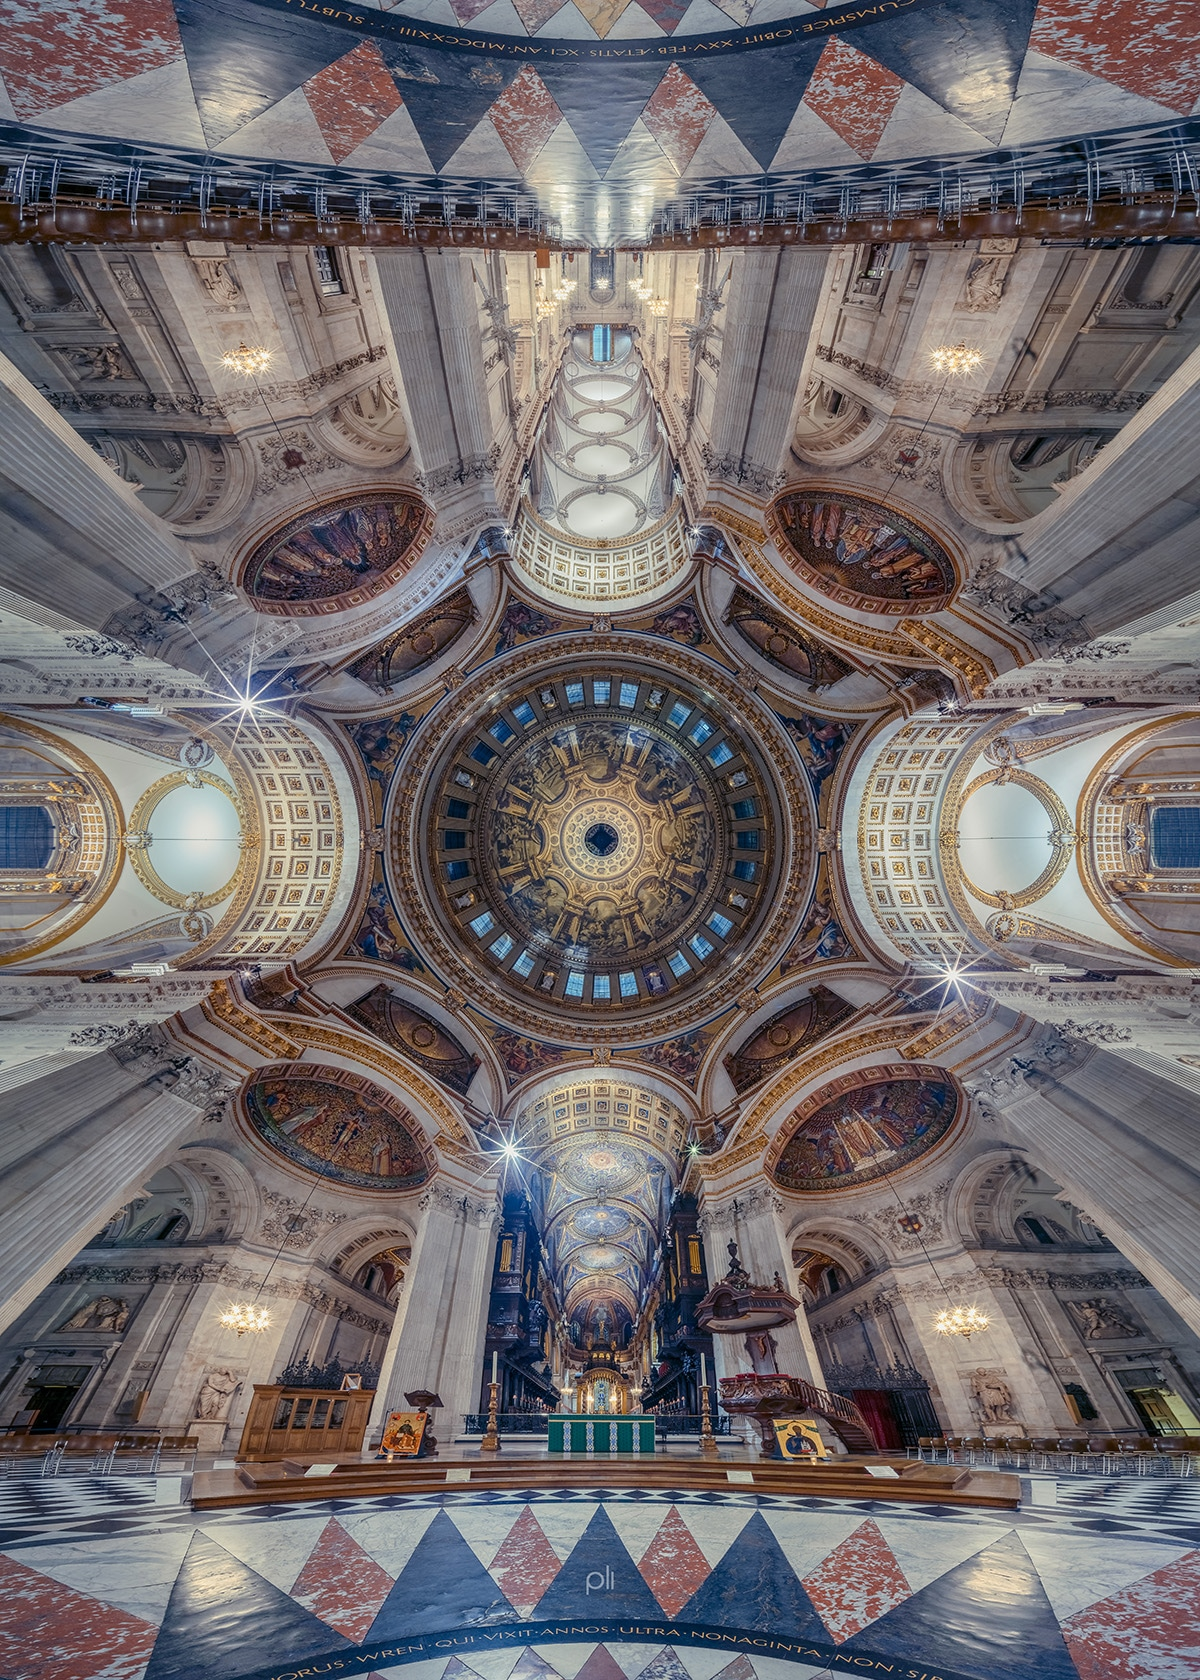 Photo of St. Paul's Dome by Peter Li